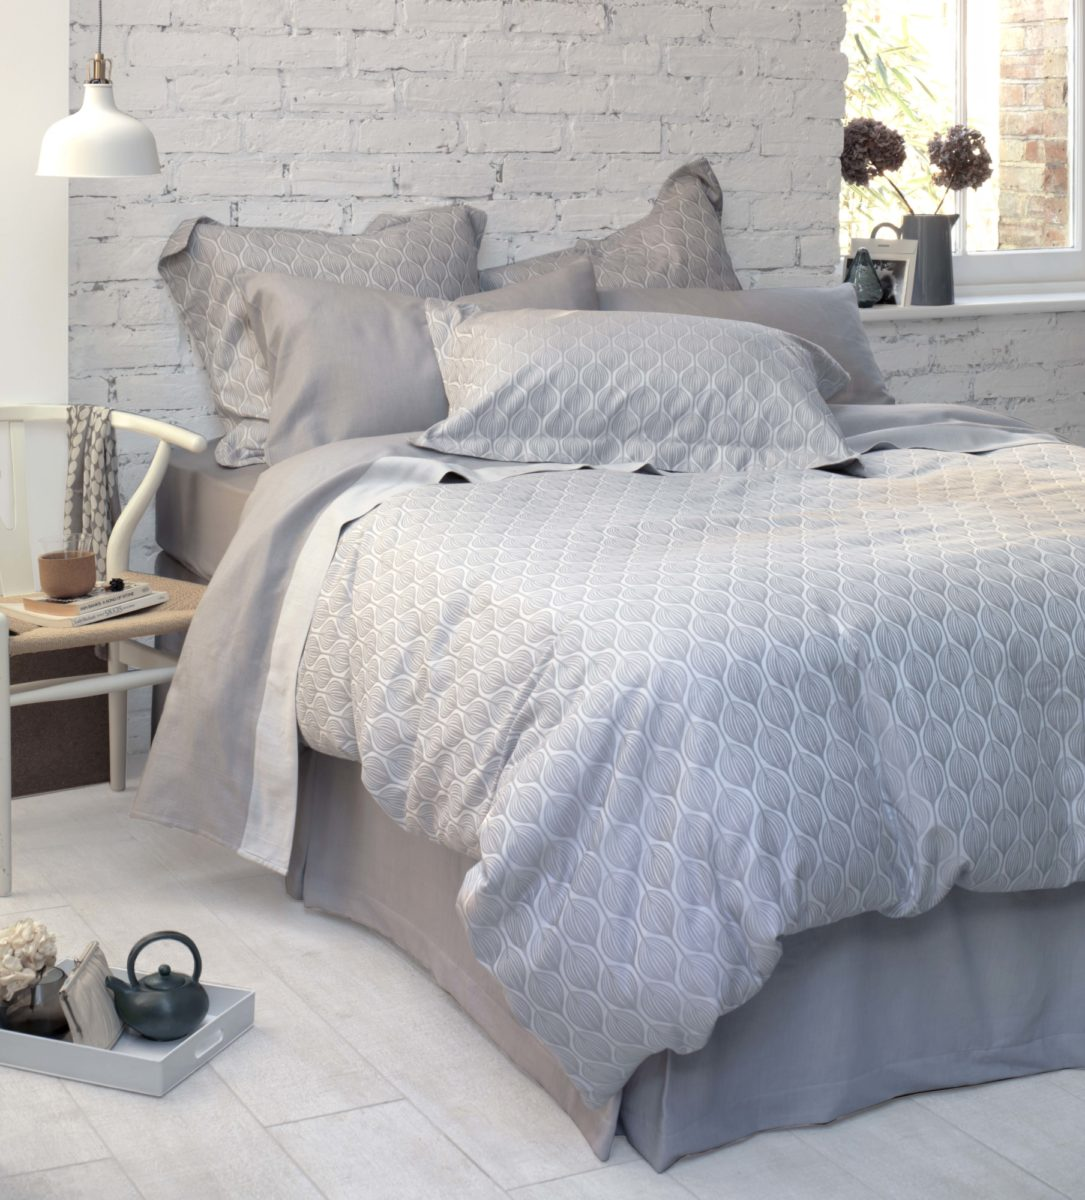 Teasels grey duvet cover 100 cotton sateen secret linen store